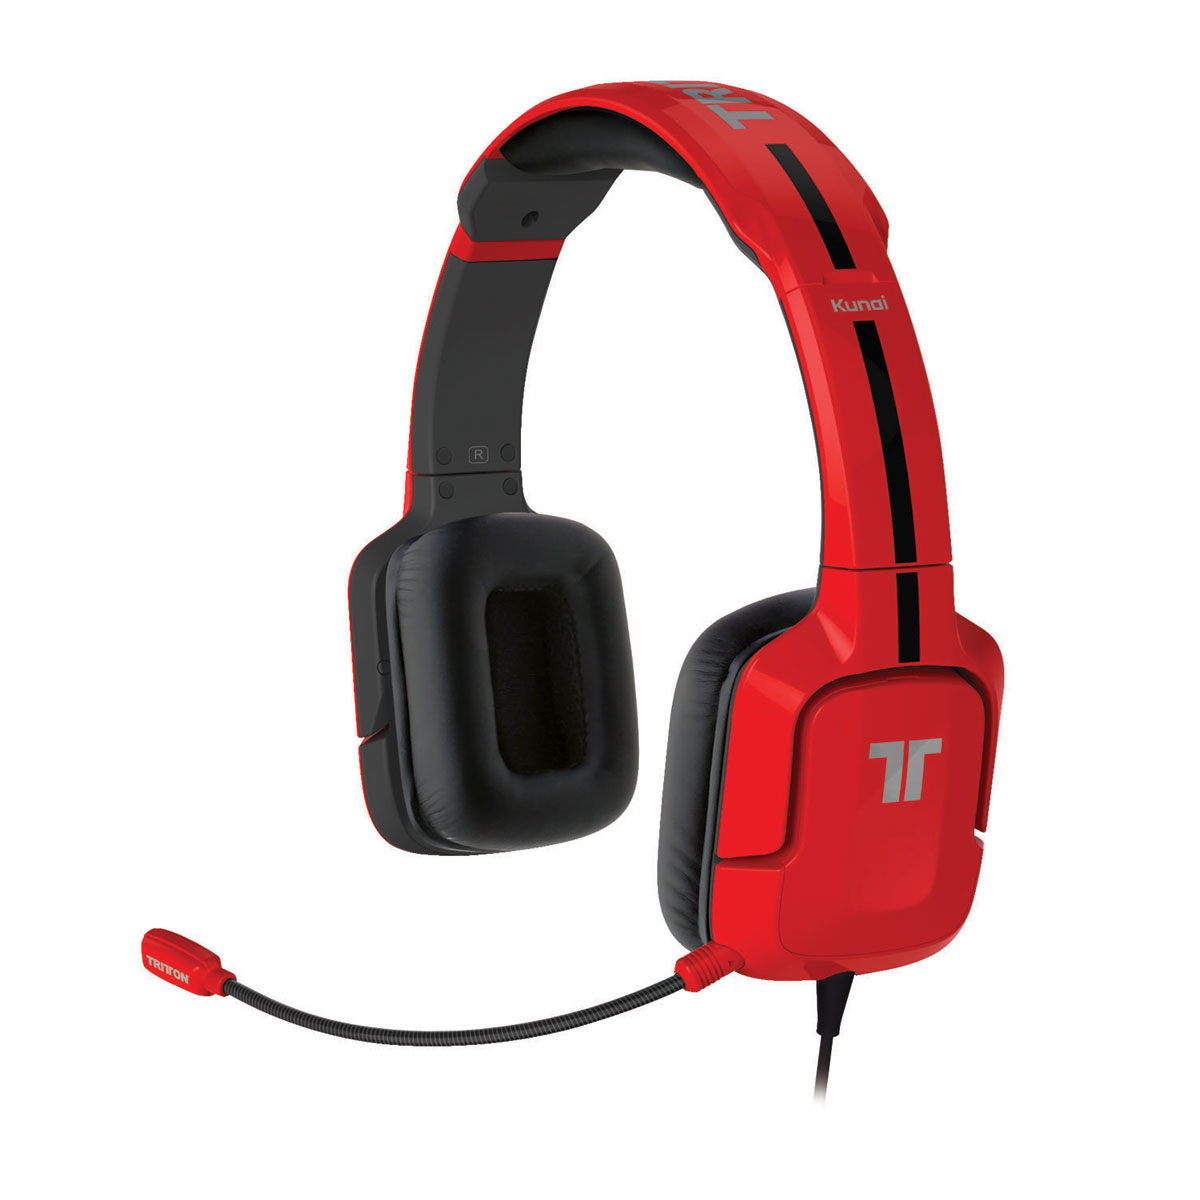 tritton kunai for playstation rouge accessoires ps3 tritton sur ldlc. Black Bedroom Furniture Sets. Home Design Ideas